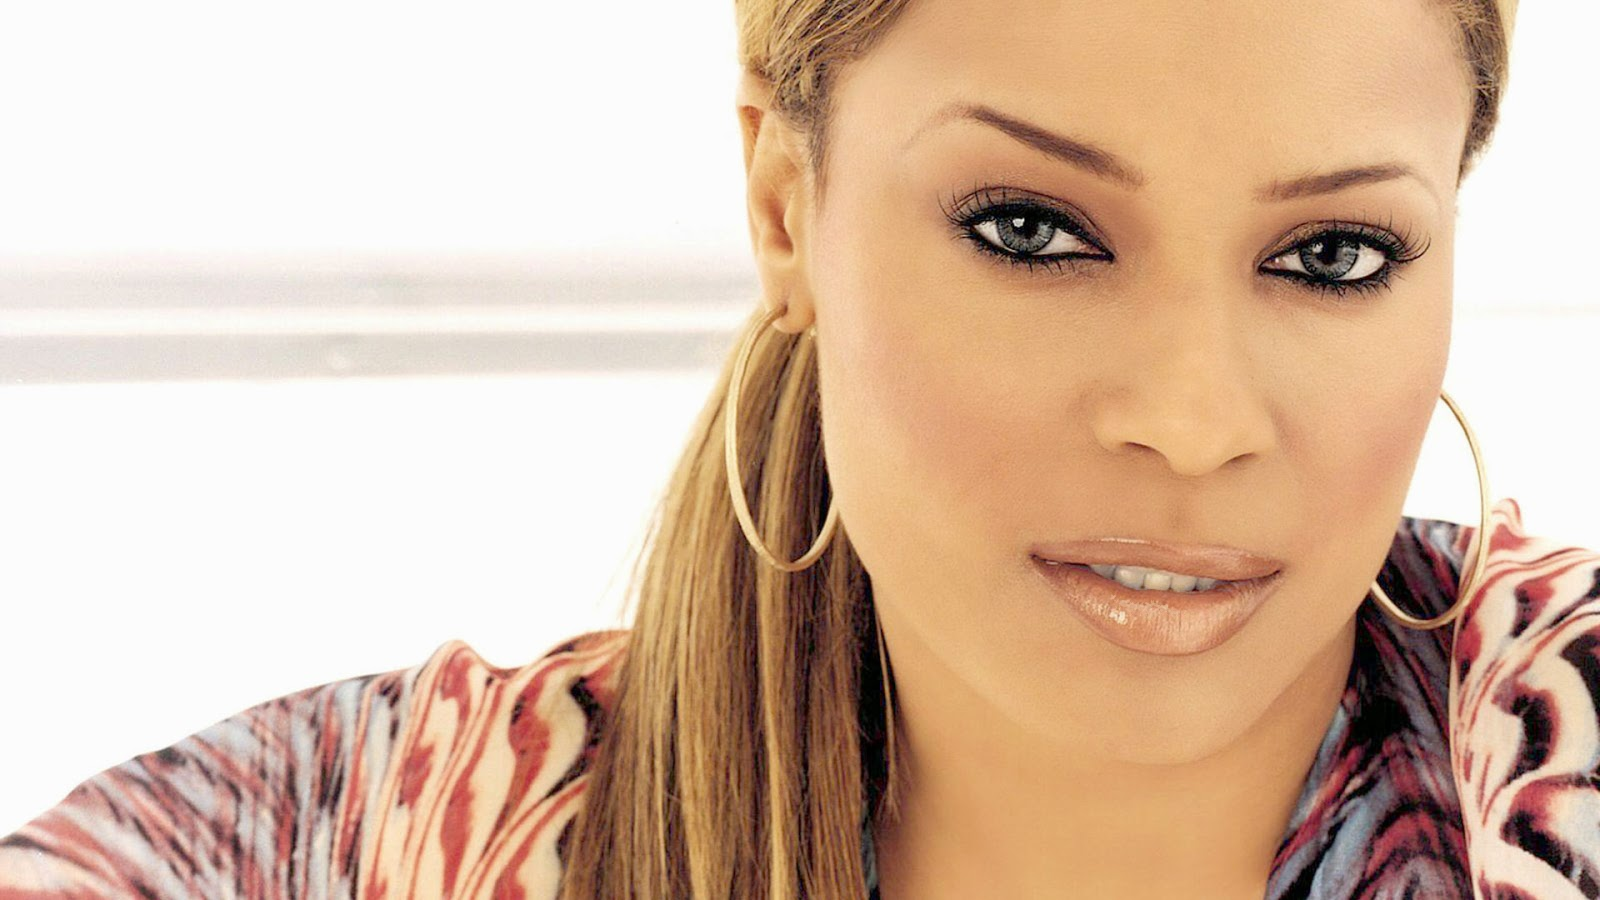 jay z dated blu cantrell Rudersdal